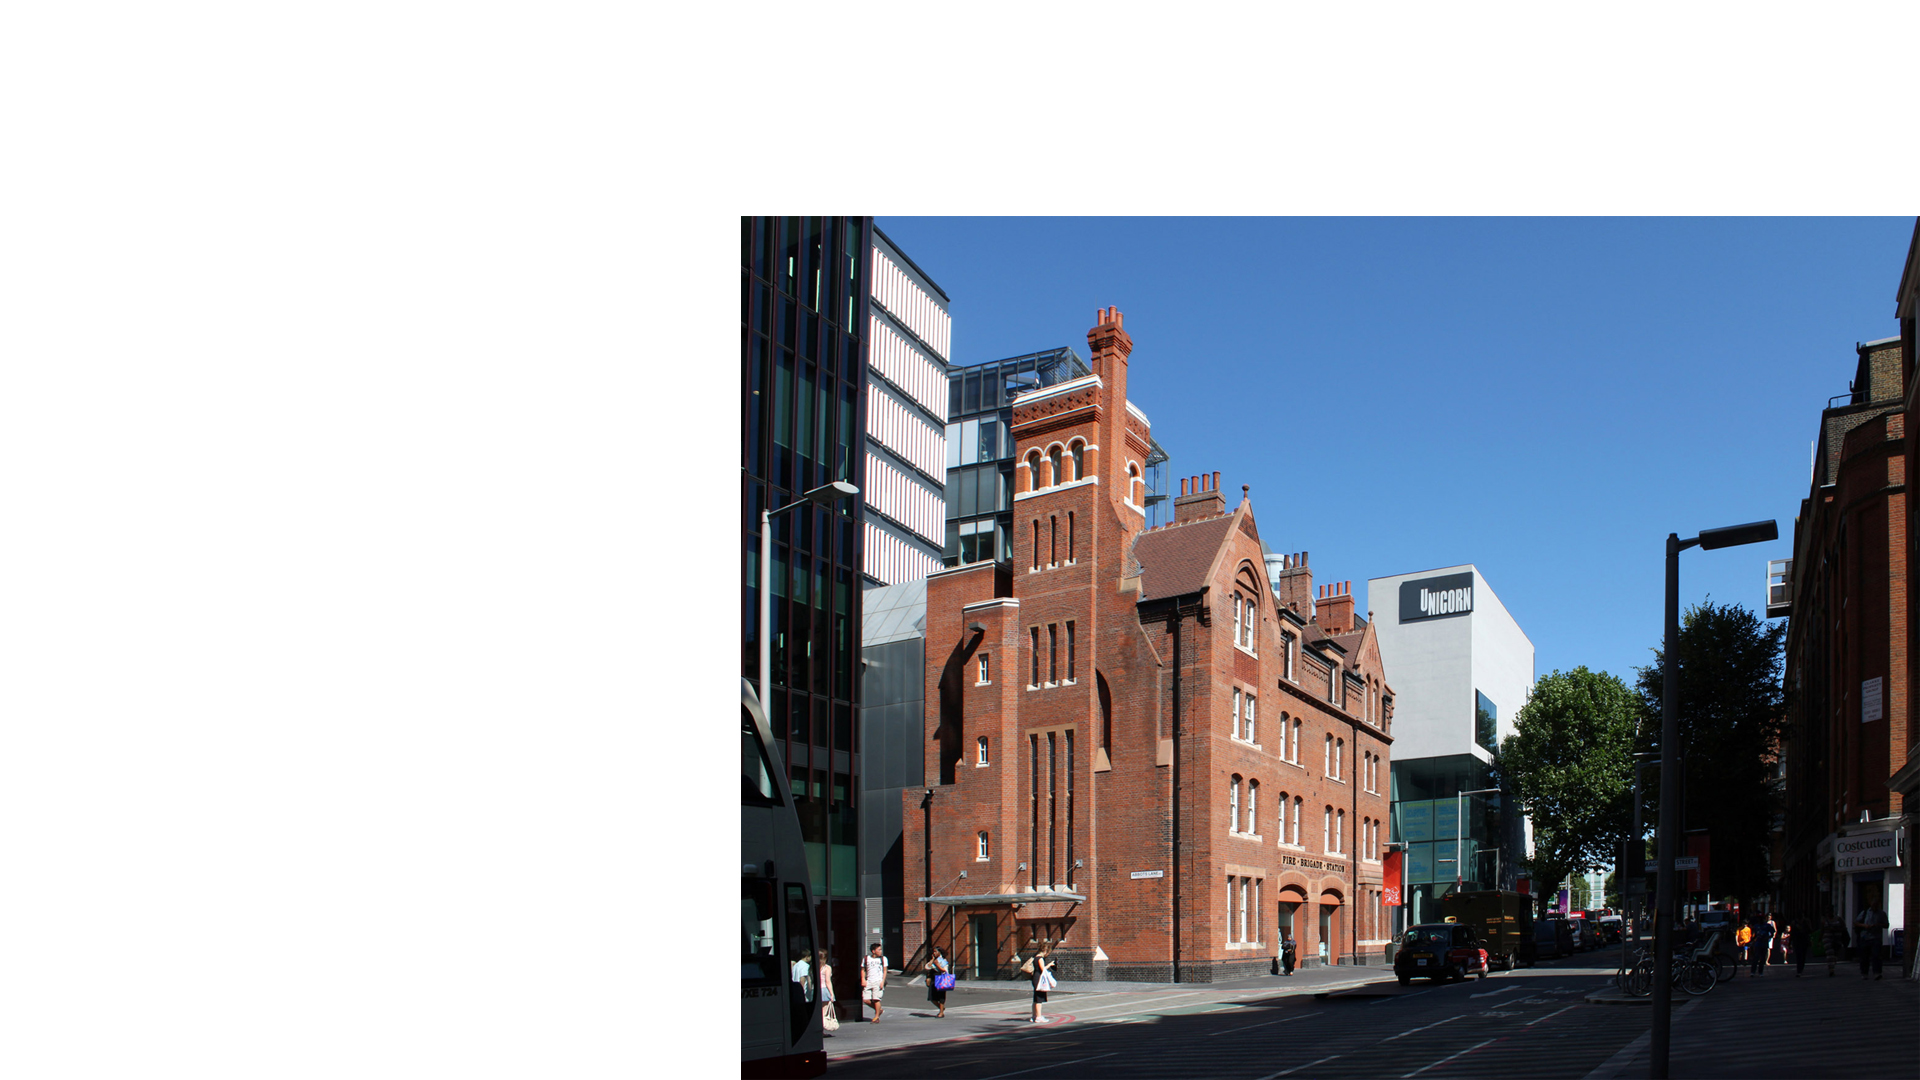 Restored former Tooley Street Fire Station with Unicorn Theatre